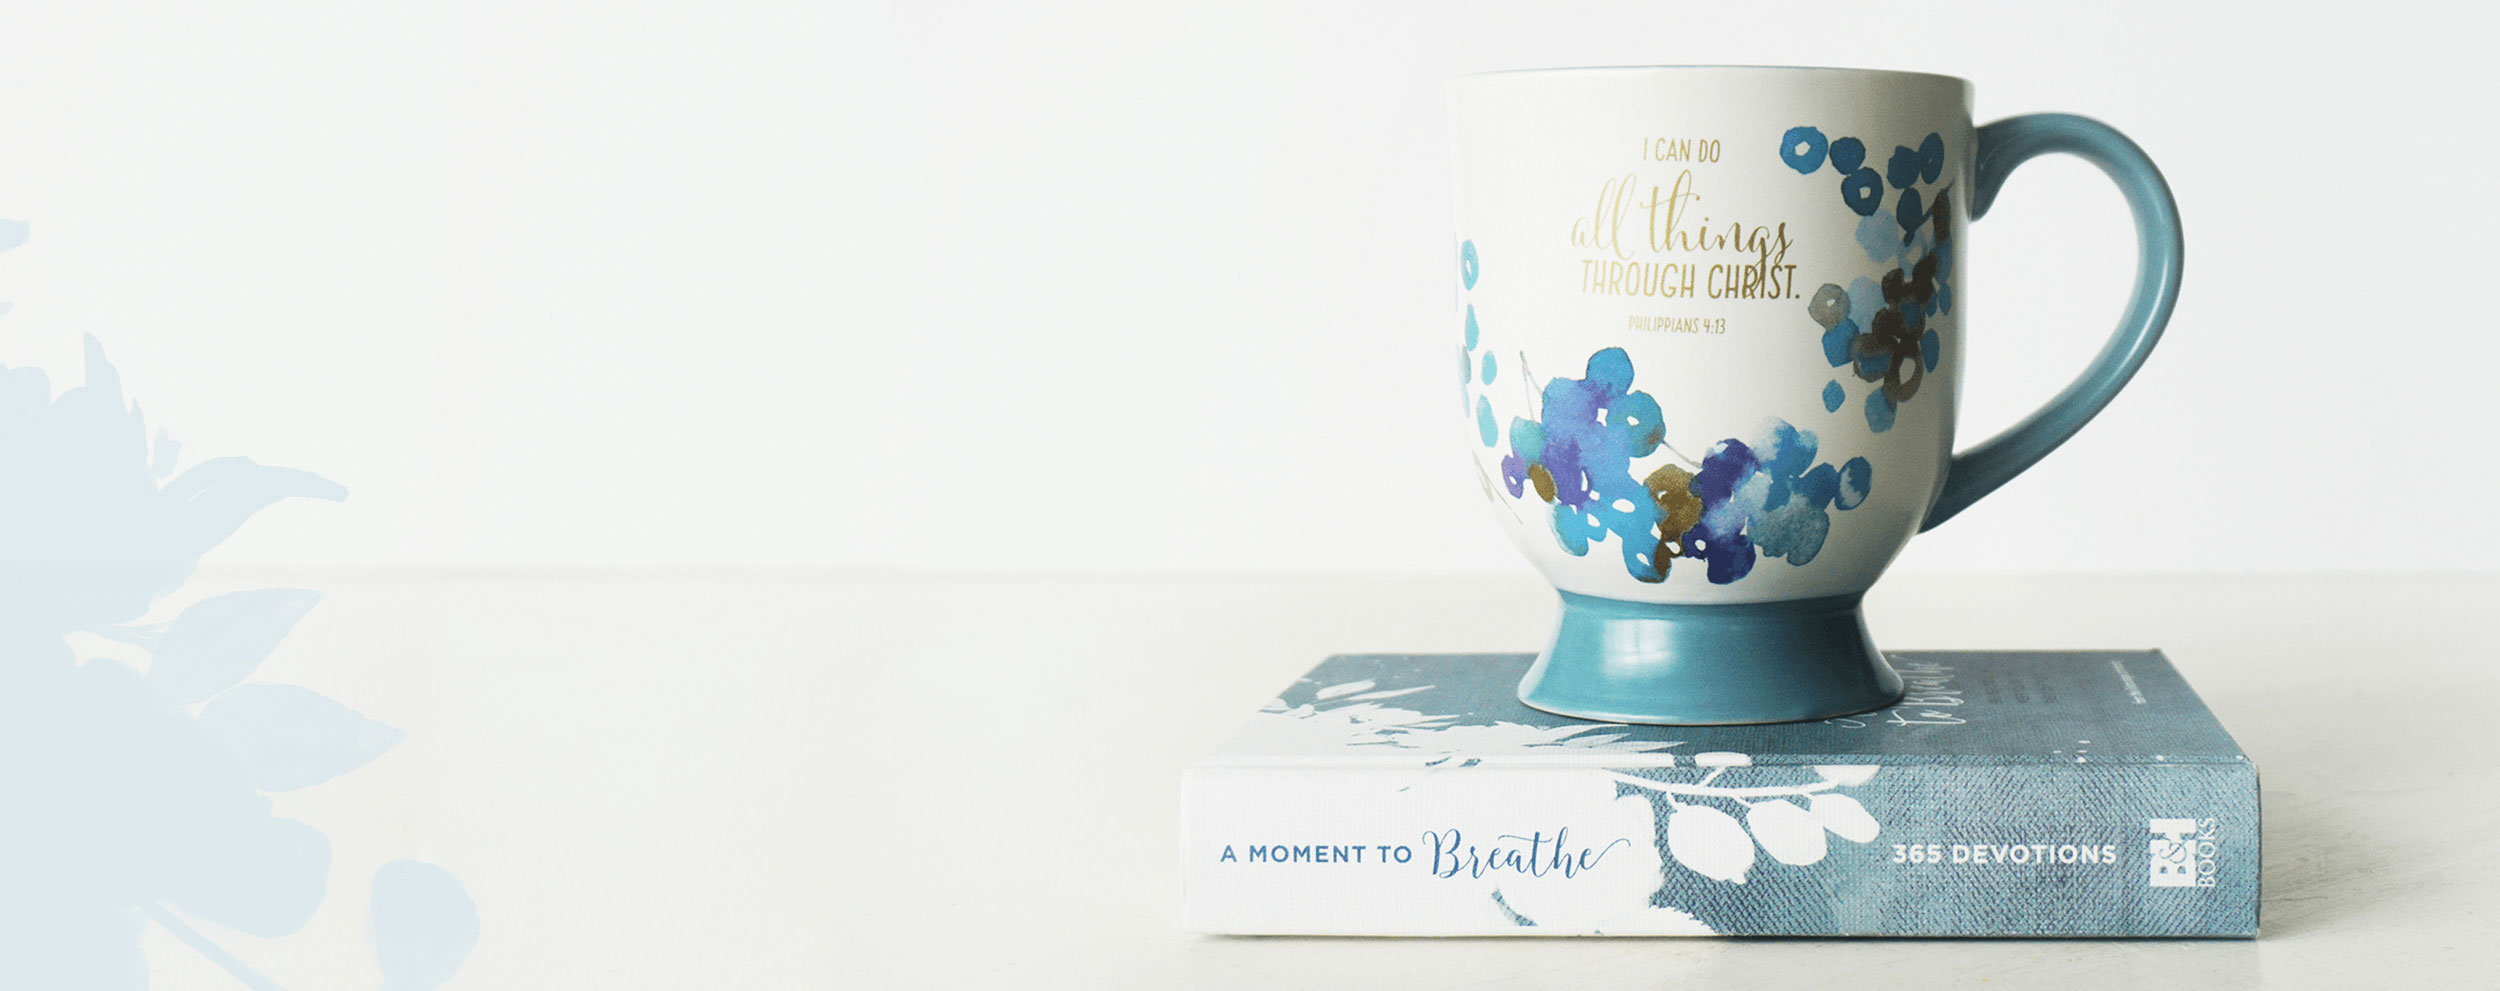 A Moment to Breathe Book and Mug